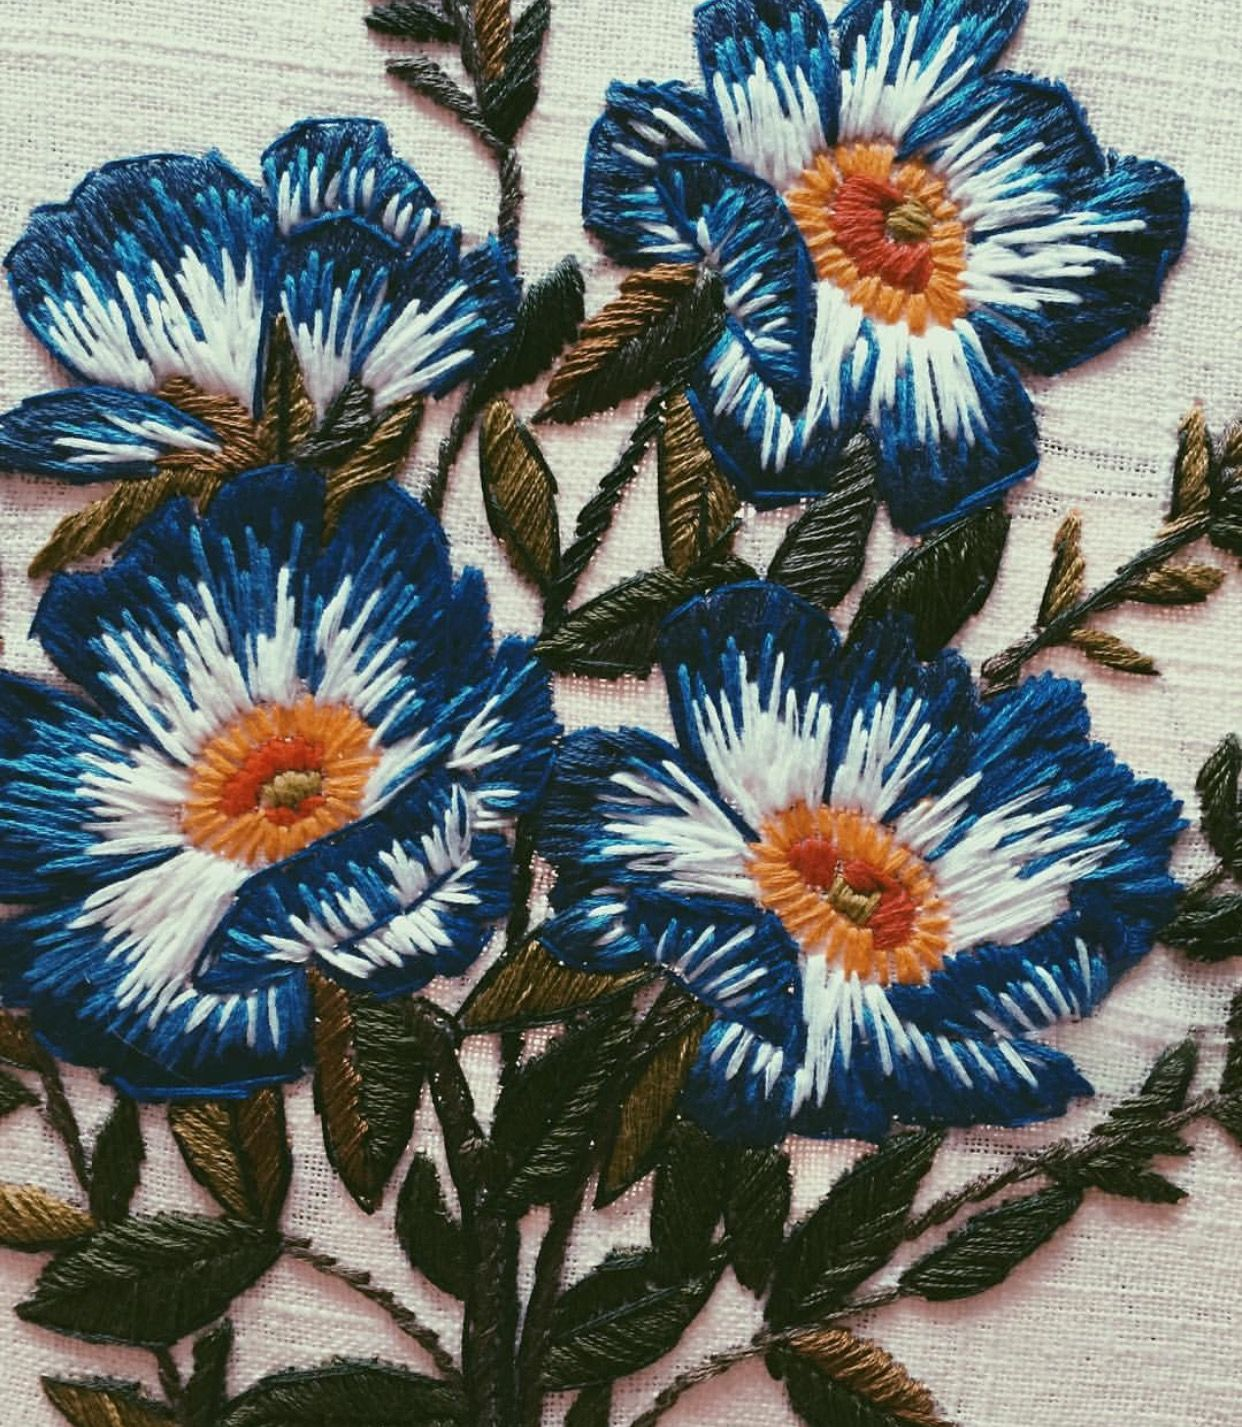 Flower embroidery by artist I found on Instagram tessa perlow Fiber Art